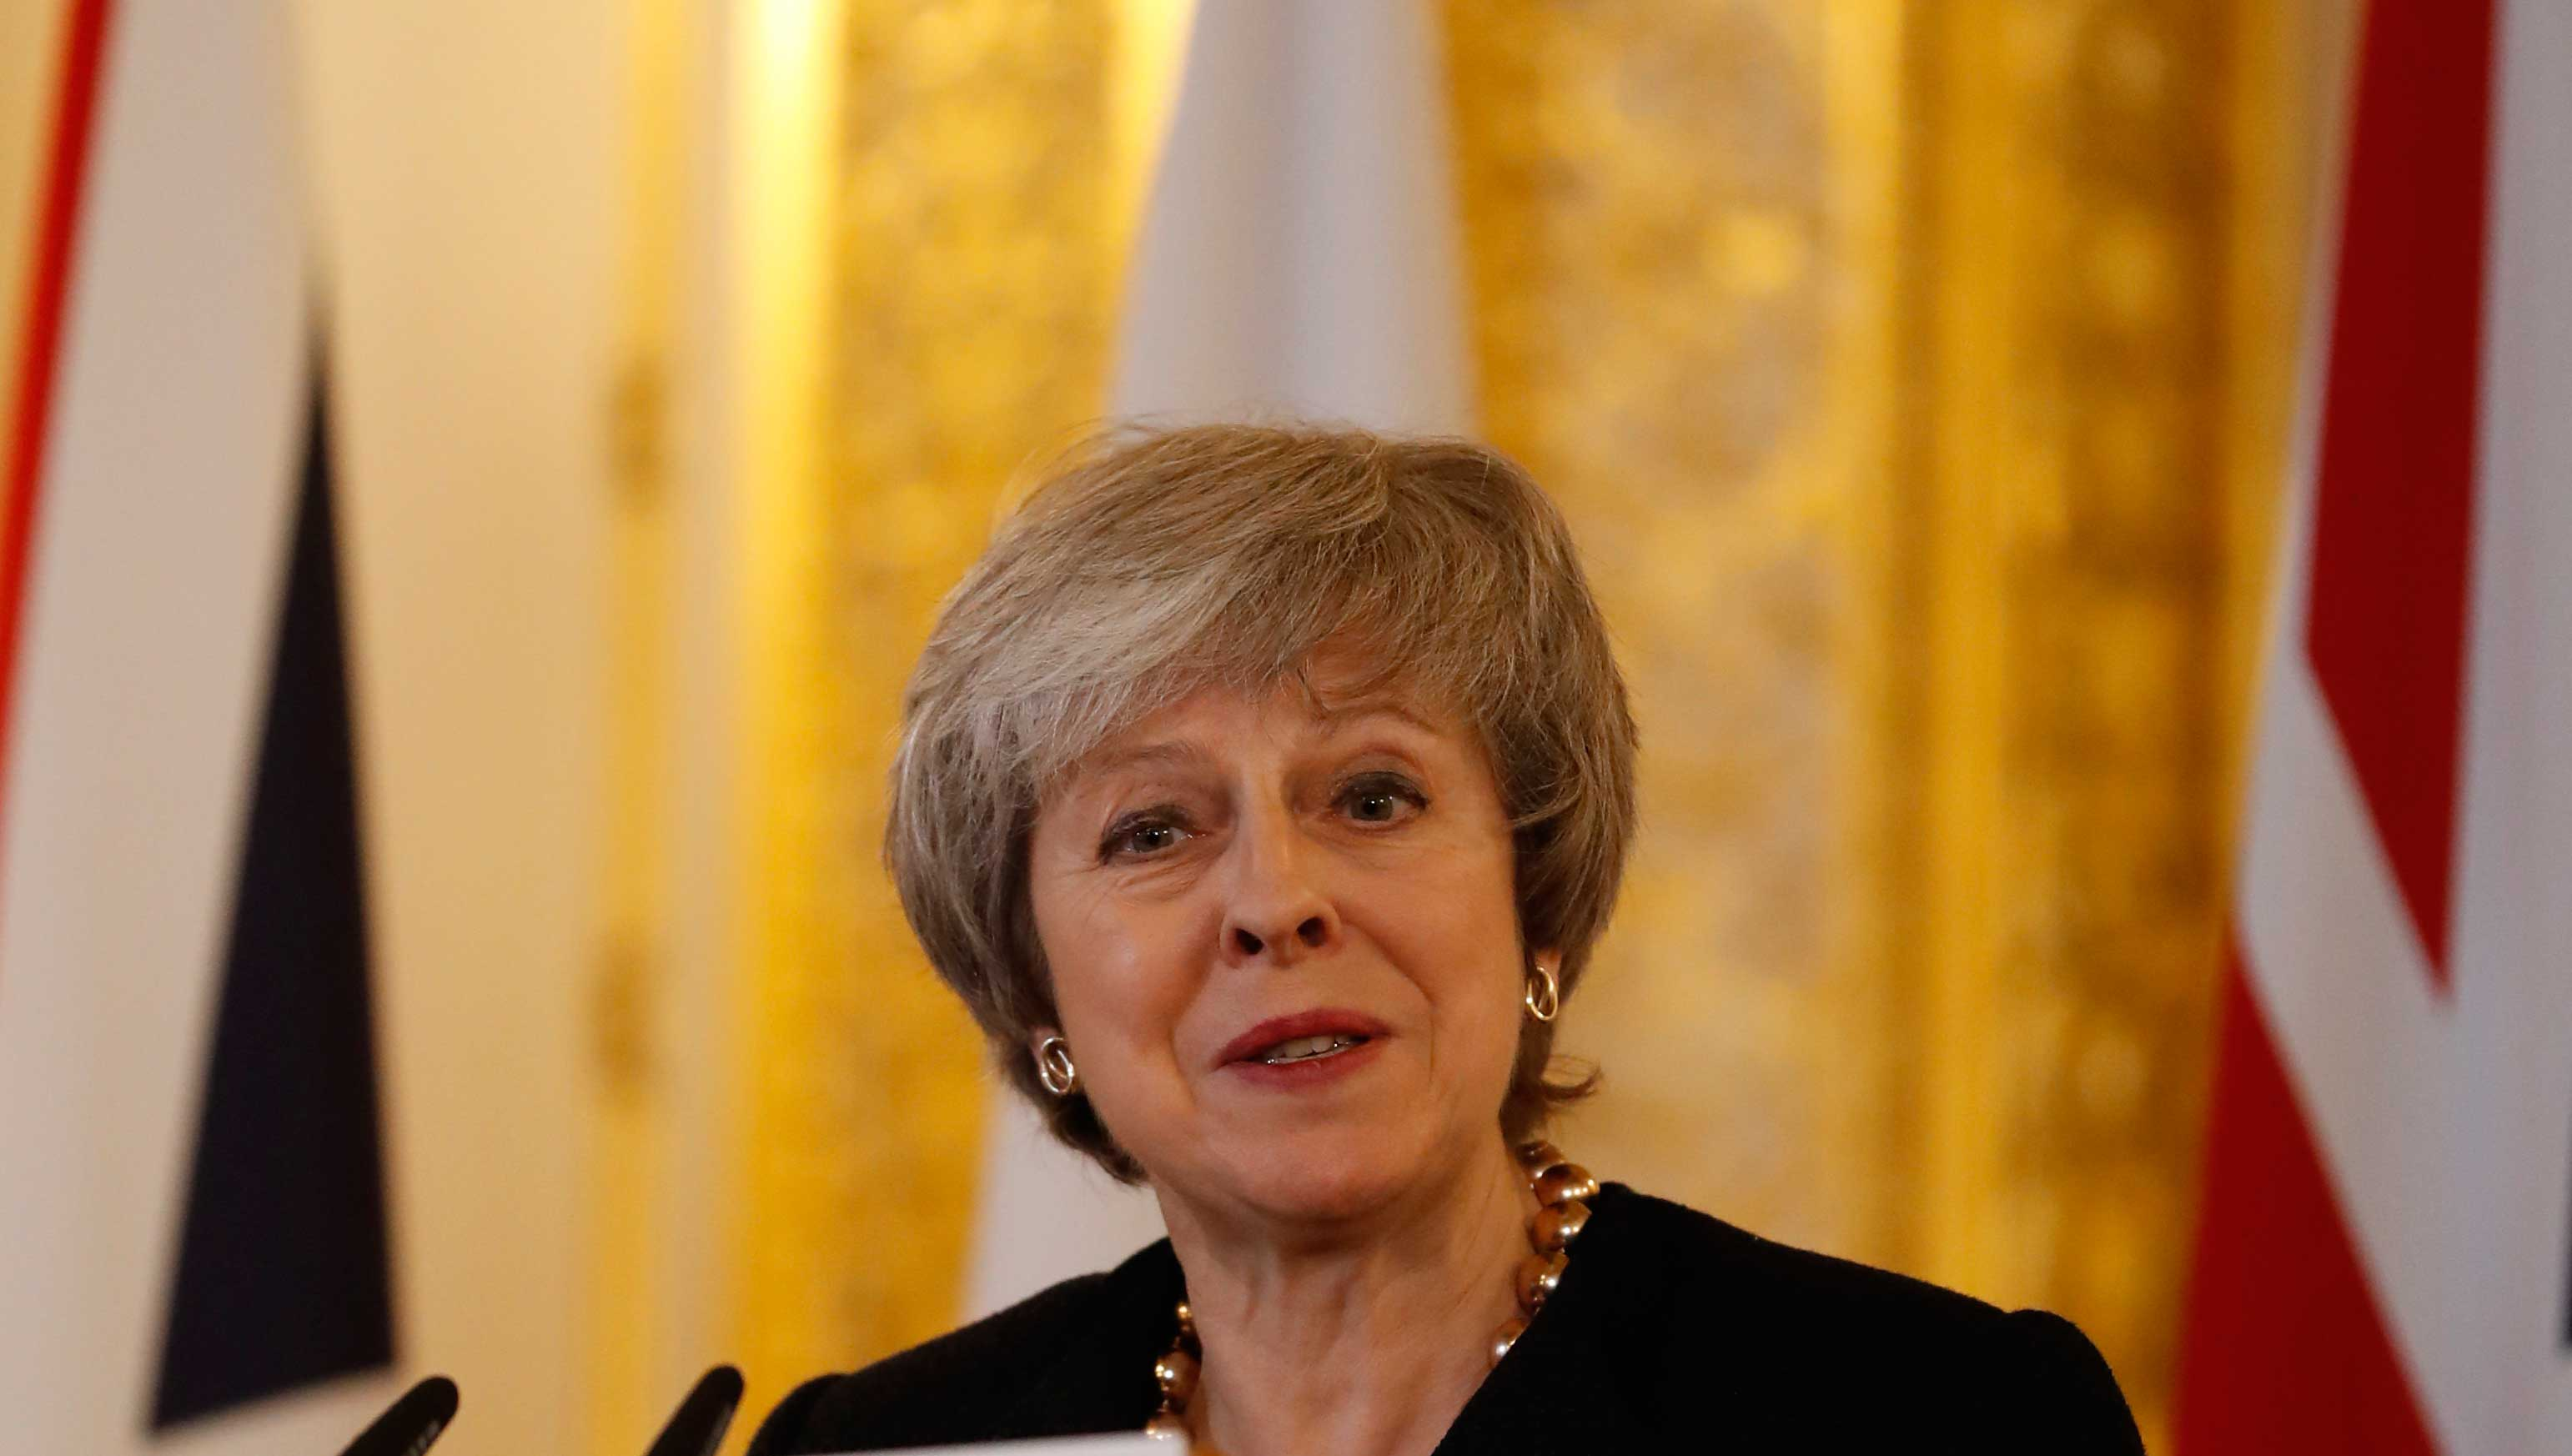 Theresa May speaks to the media during a press conference with the Polish Prime Minister Mateusz Morawiecki following a UK/Poland IGC meeting in London, on Thursday, December 20, 2018.